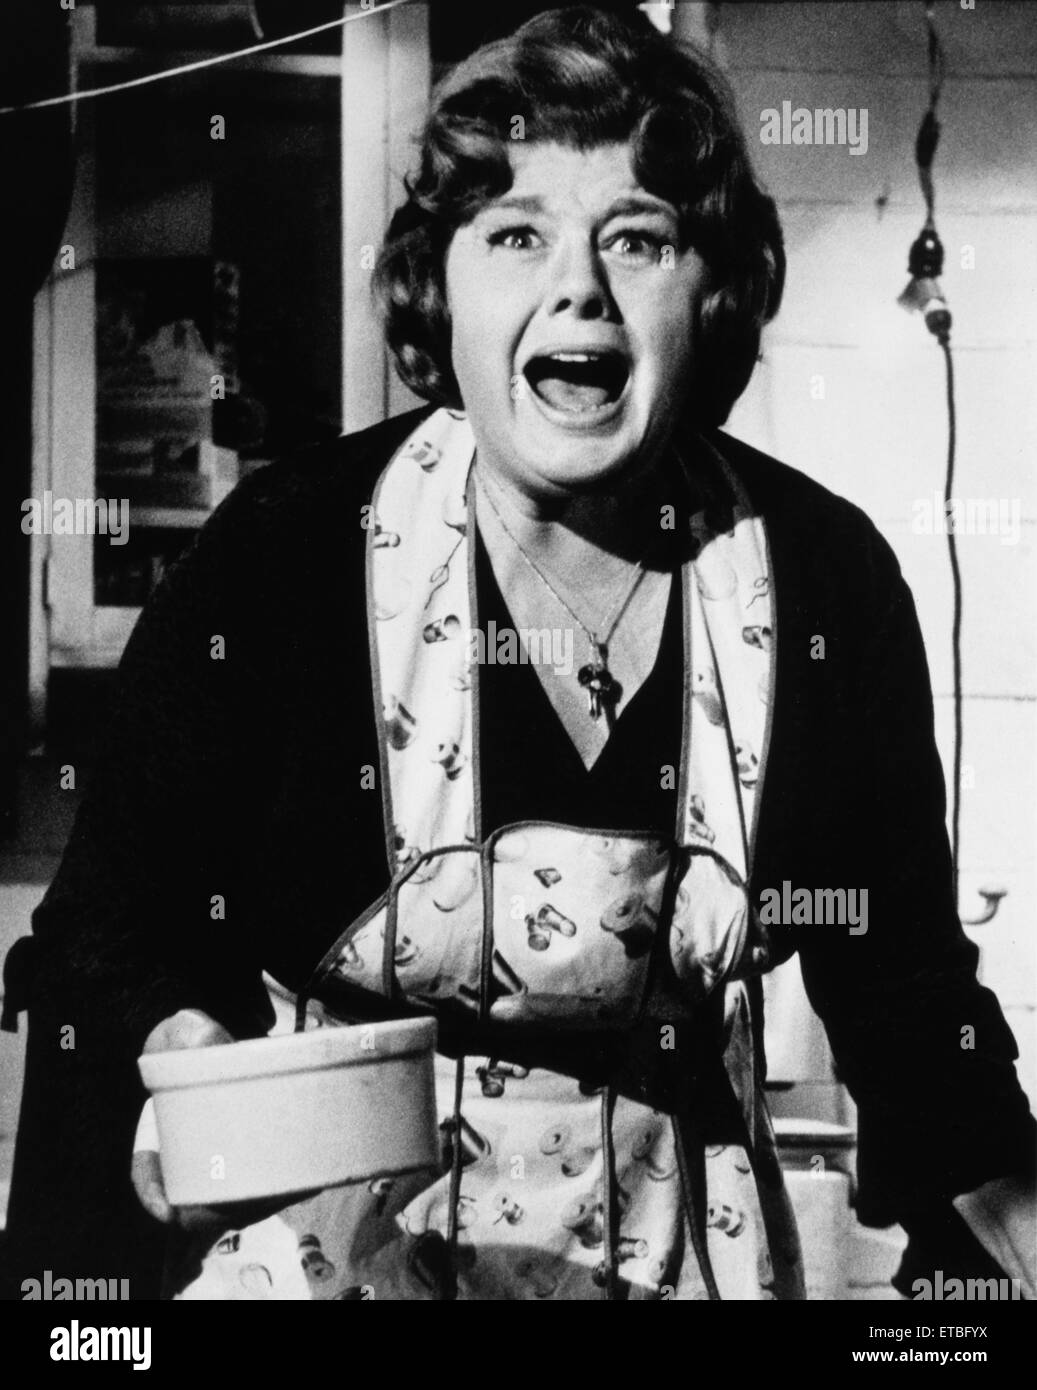 Shelley Winters, on-set of the Film 'What's the Matter with Helen?', 1971 - Stock Image